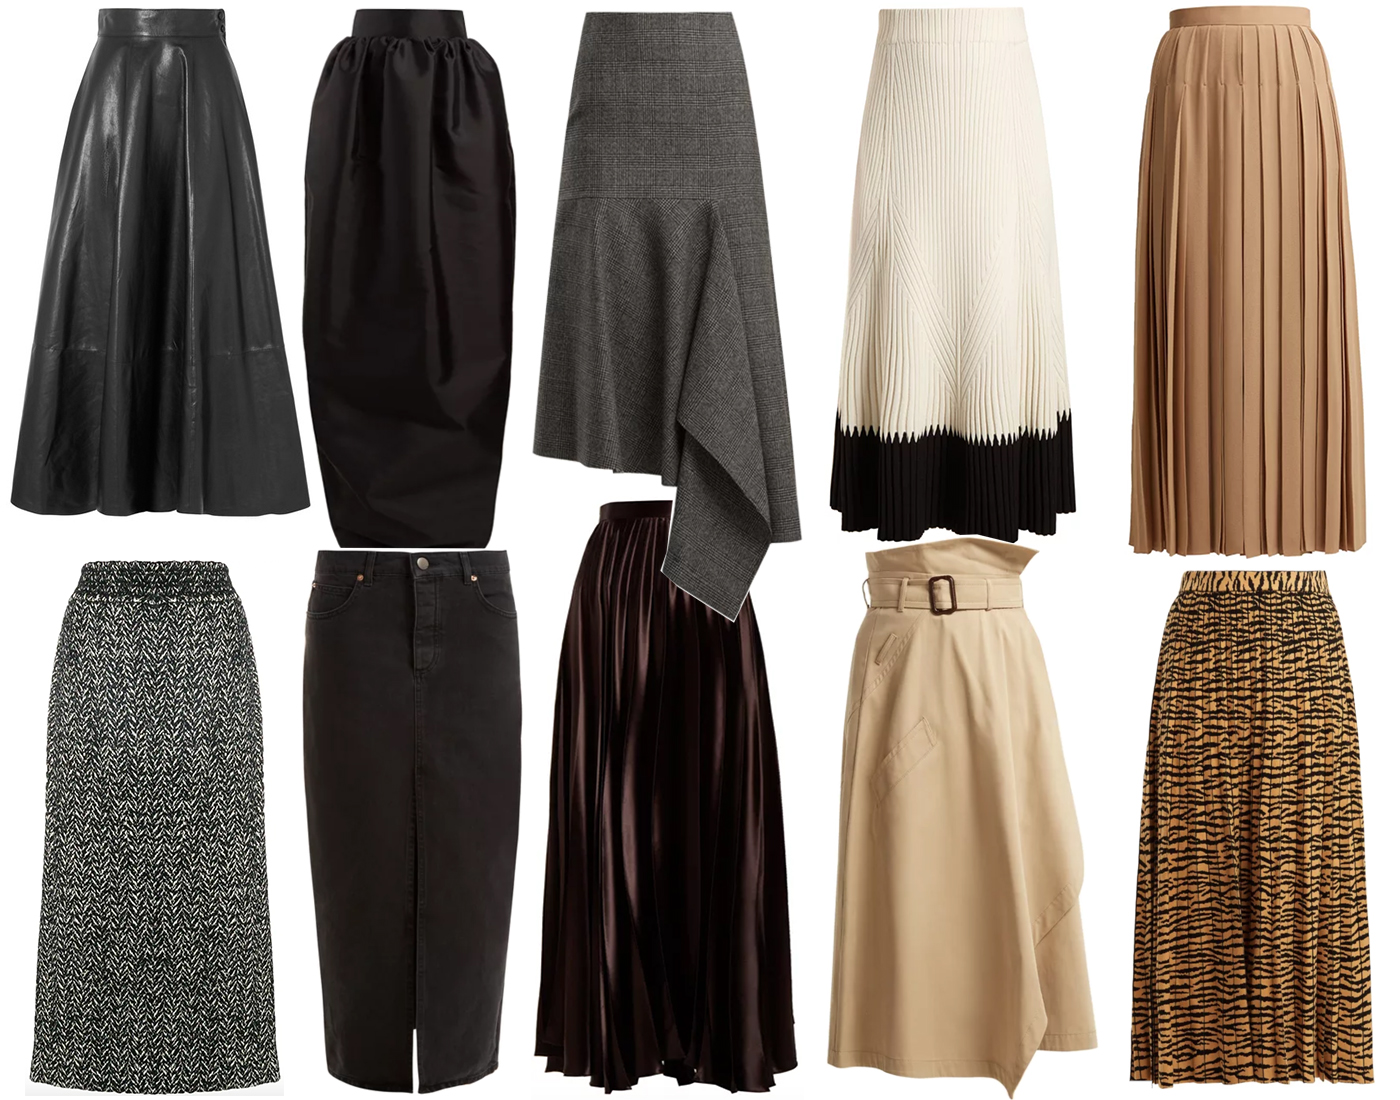 Trini | Fall Winter 2018 skirts